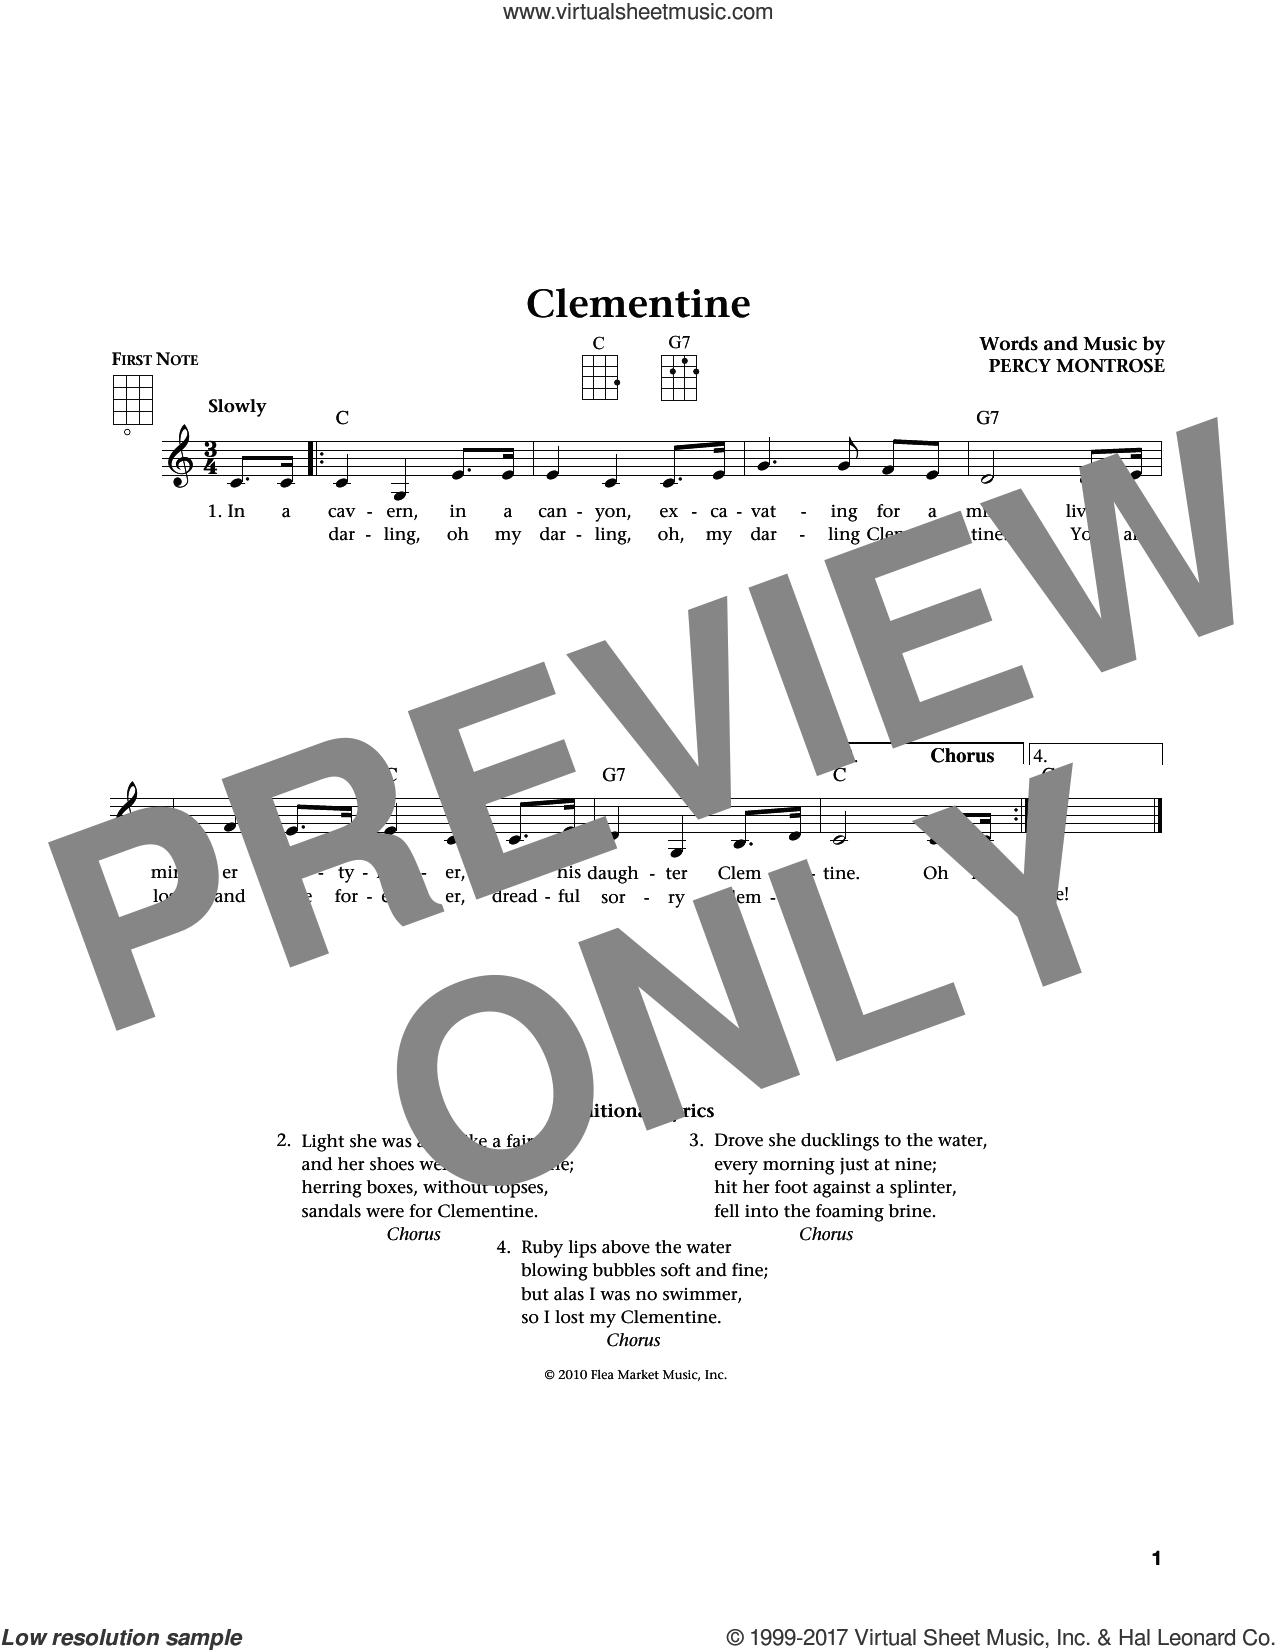 (Oh, My Darling) Clementine sheet music for ukulele by Percy Montrose, Jim Beloff and Liz Beloff, intermediate skill level